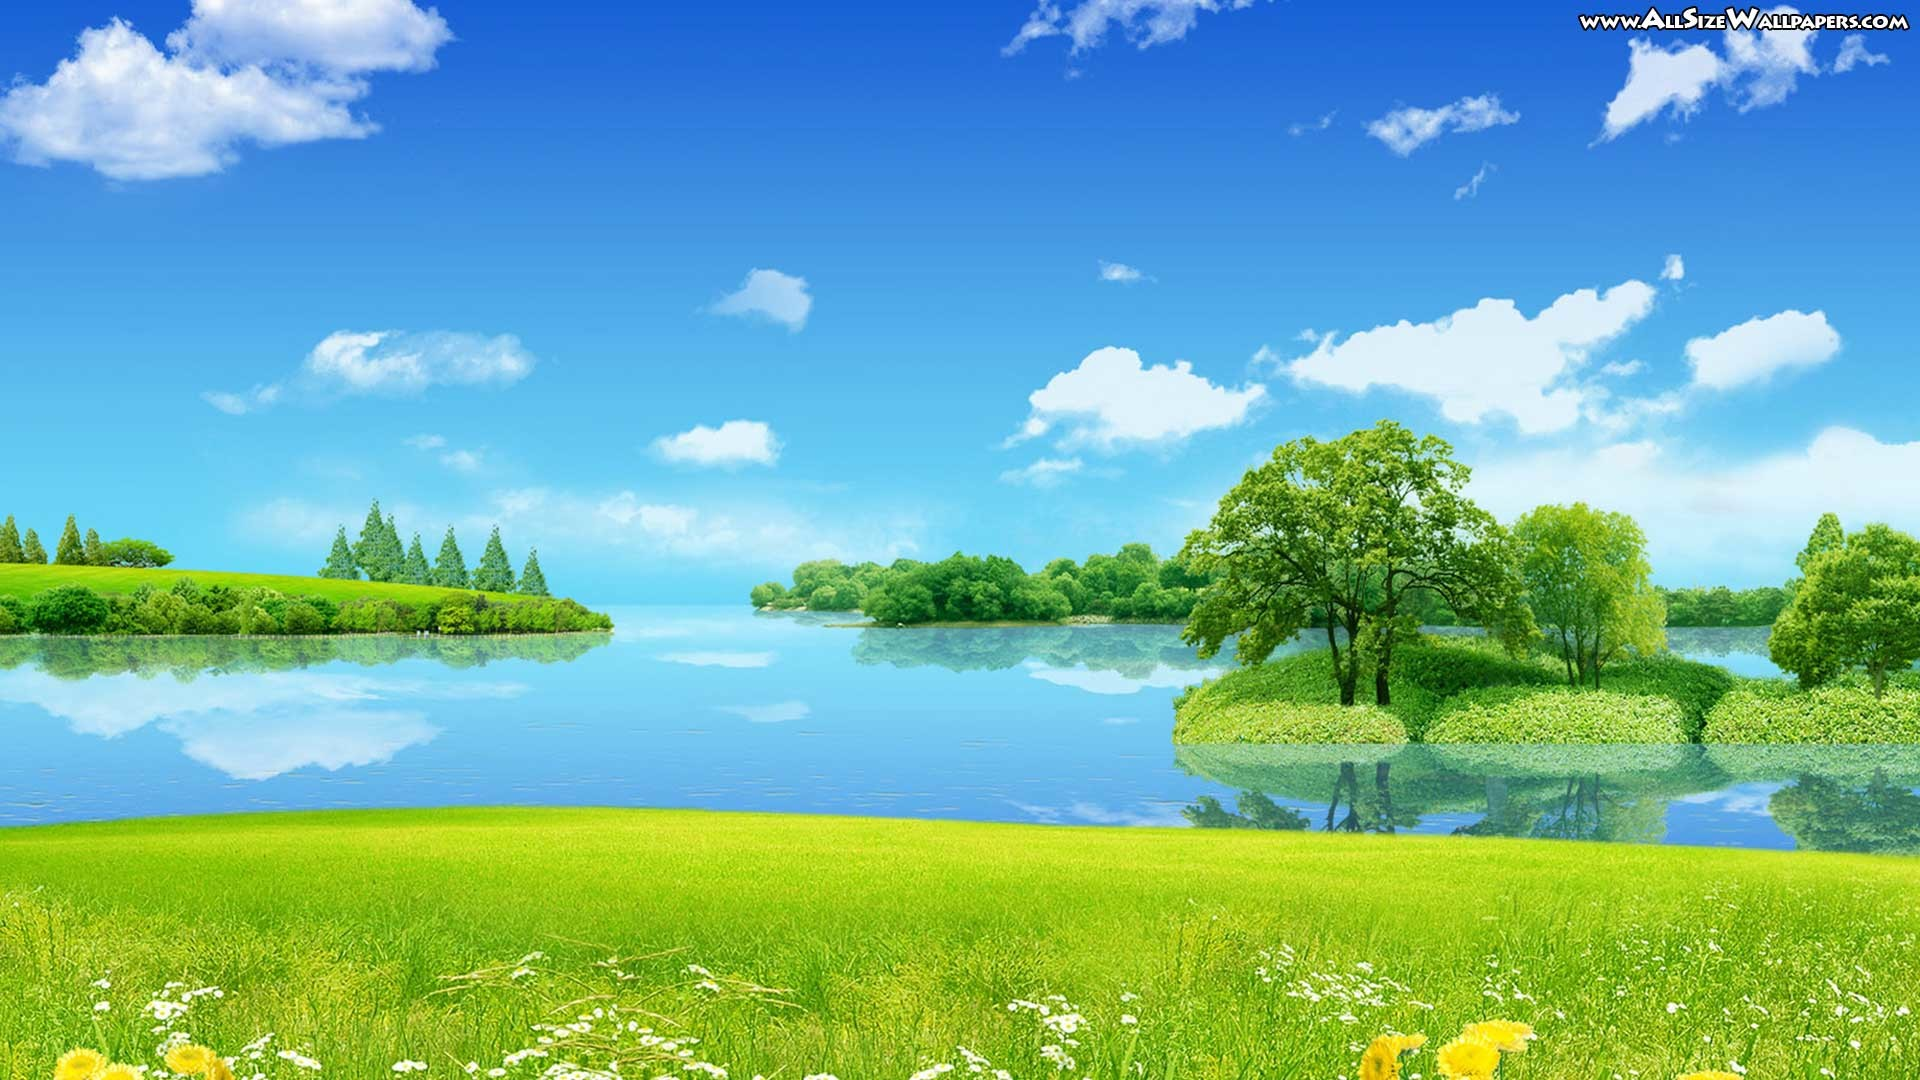 Background images nature 71 images 1920x1200 nature clipart wallpaper voltagebd Image collections